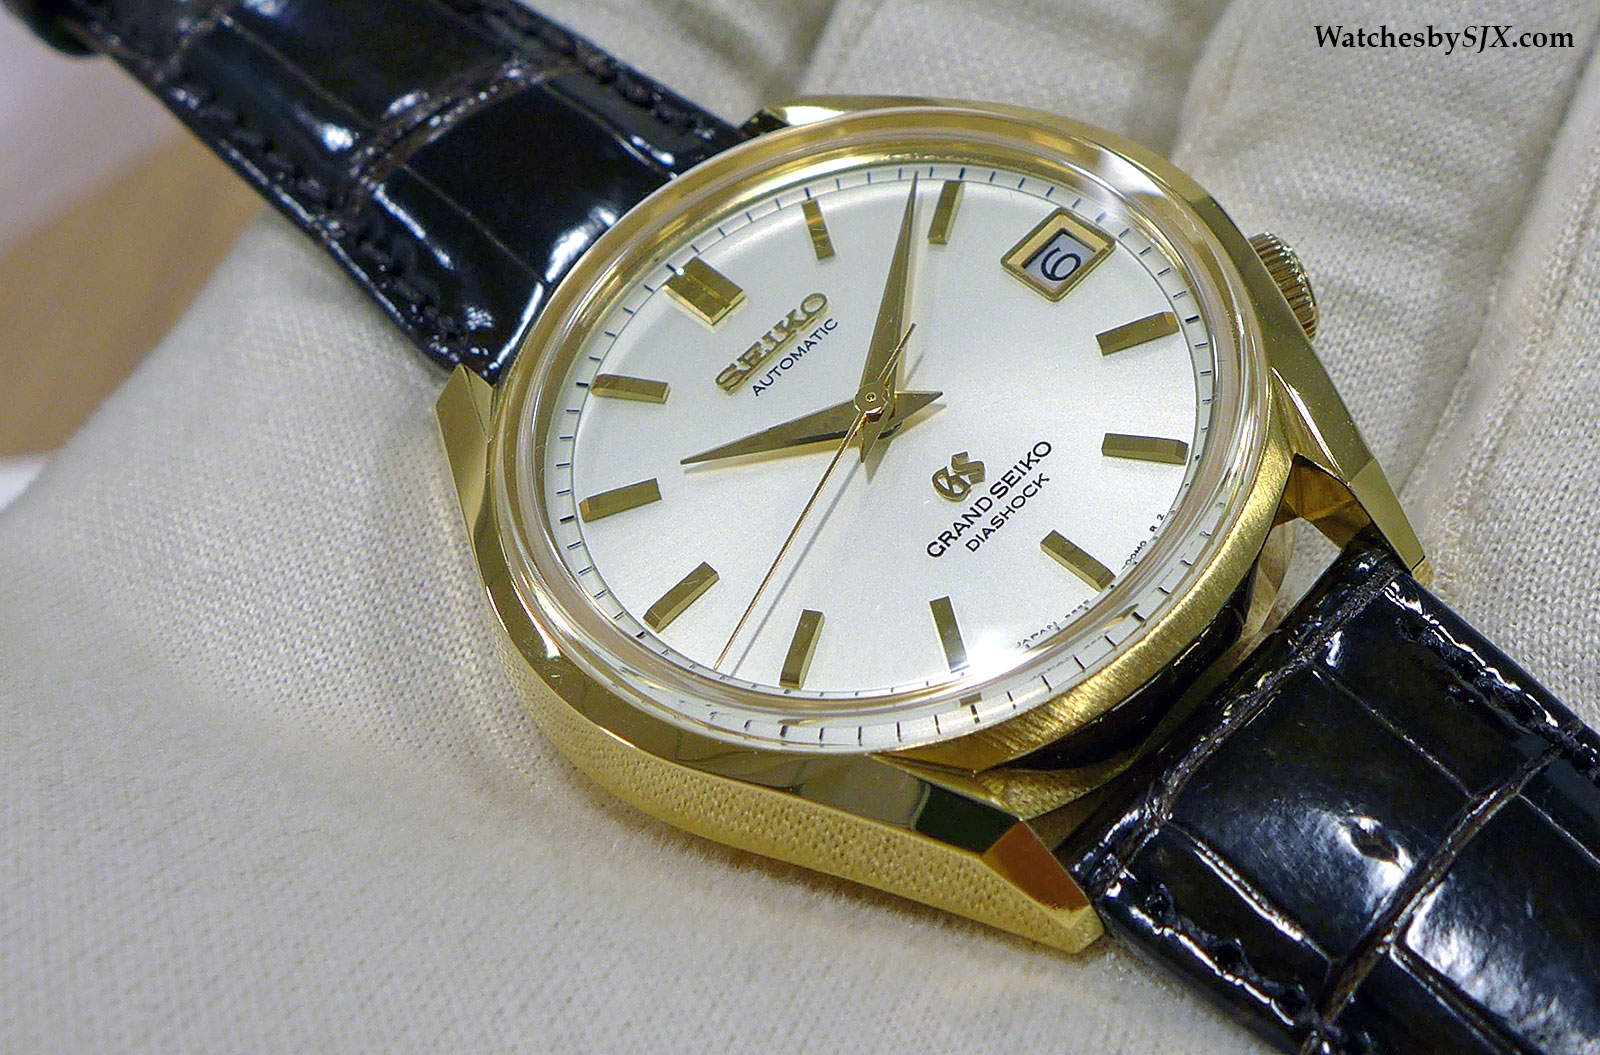 new arrival 76894 f592e Watches By SJX: Hands-On With The Grand Seiko Historical ...